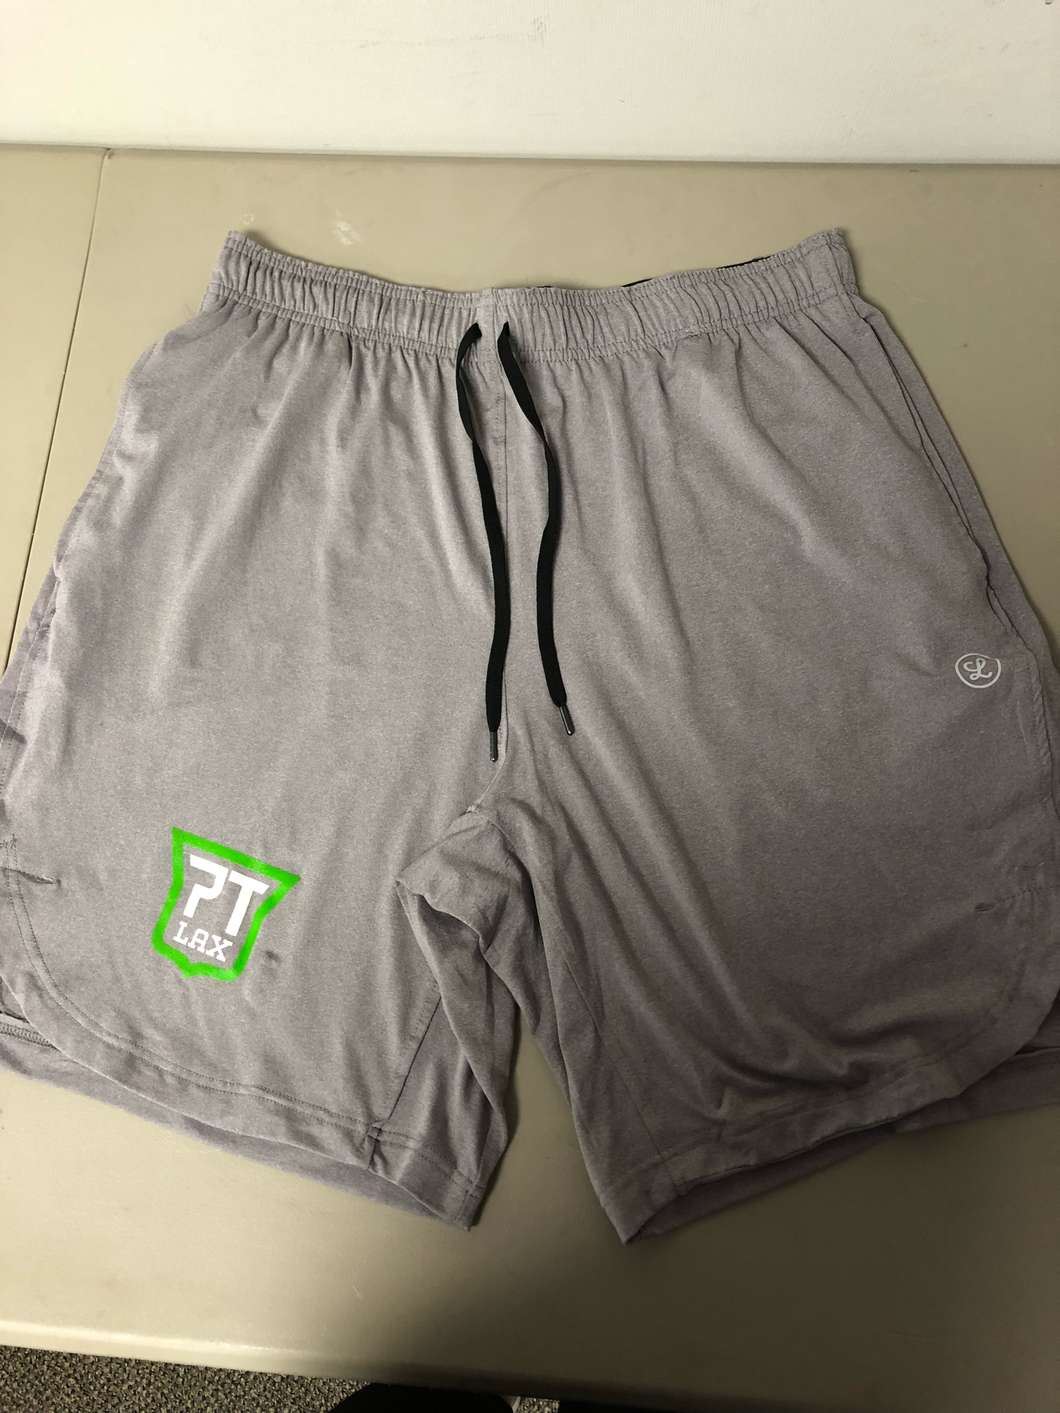 Legends PT Shorts